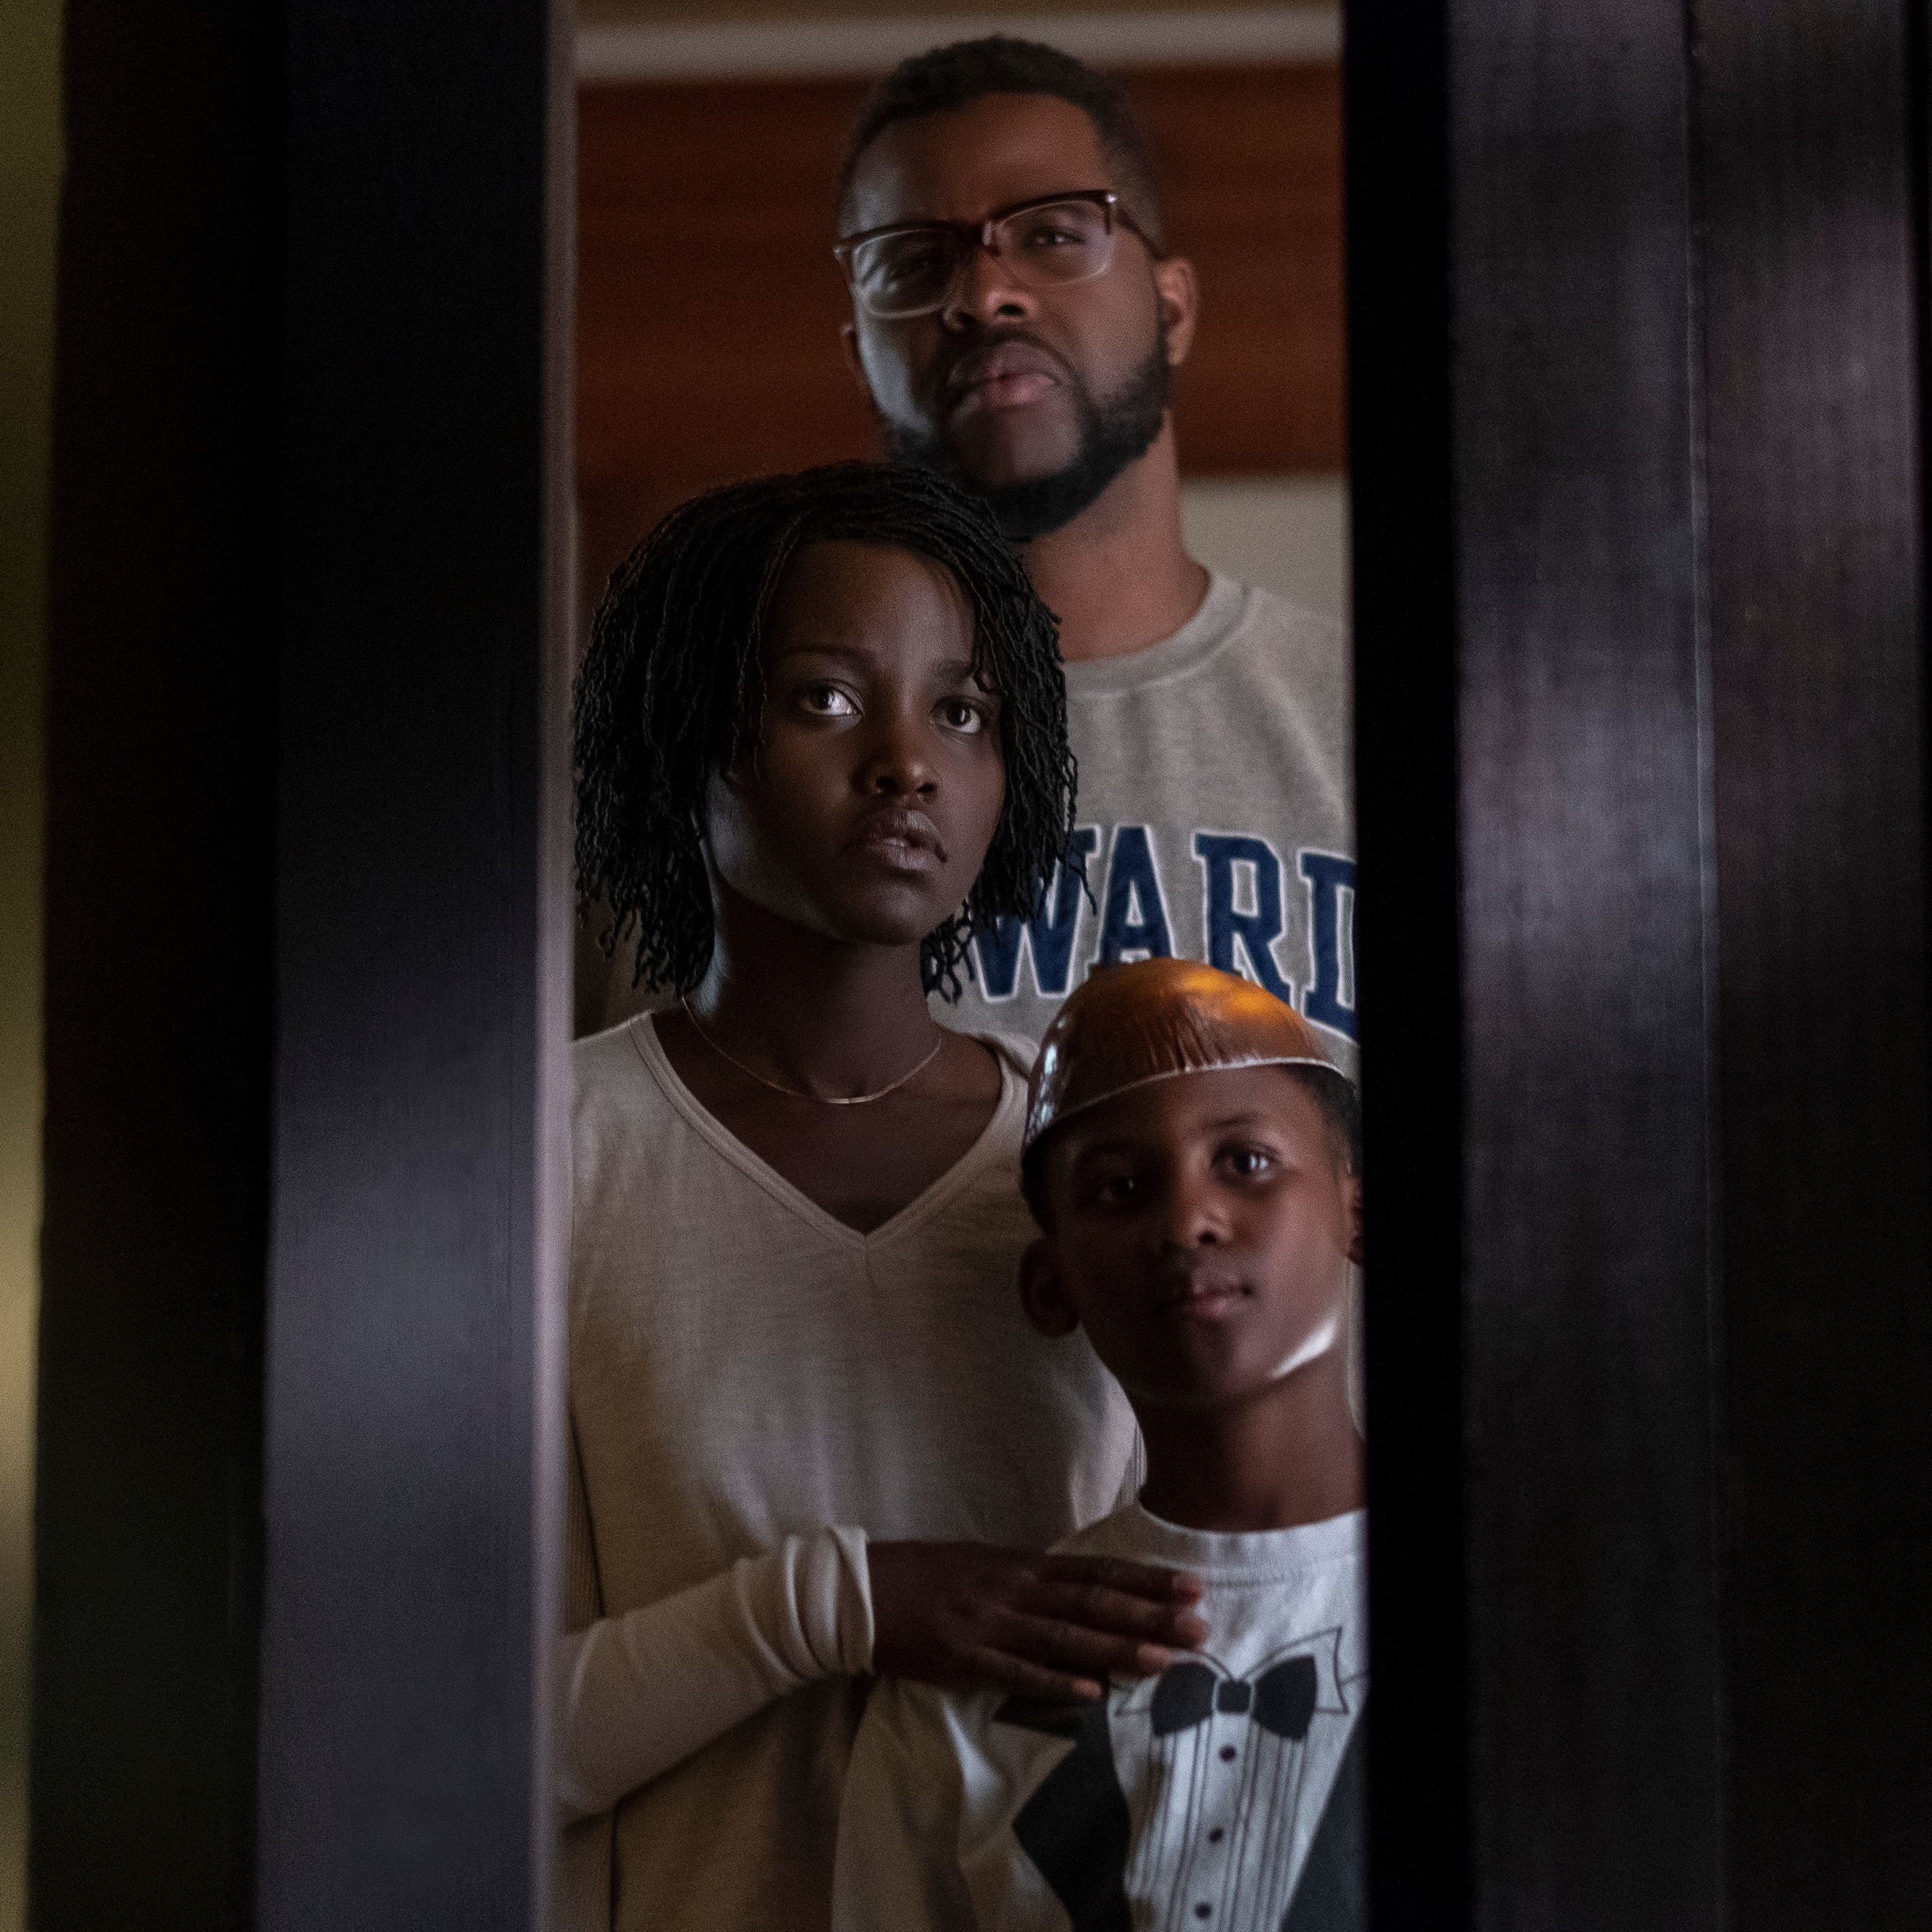 'My god': Jordan's Peele's horror flick 'Us' earns raves at SXSW: Here are first reactions